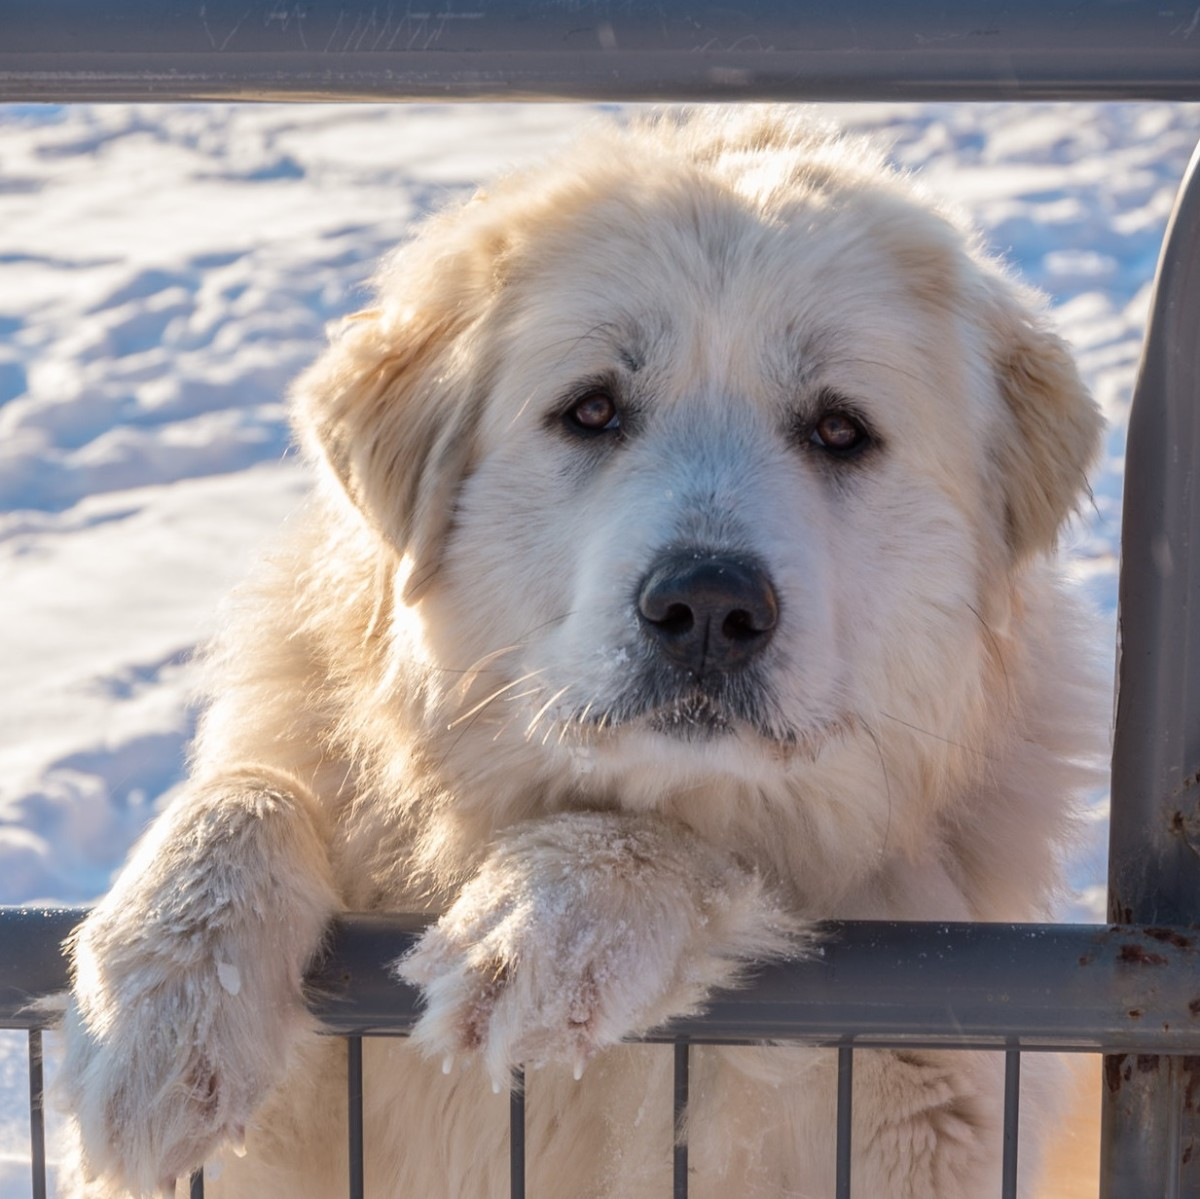 The Great Pyrenees is docile but barks at strangers.